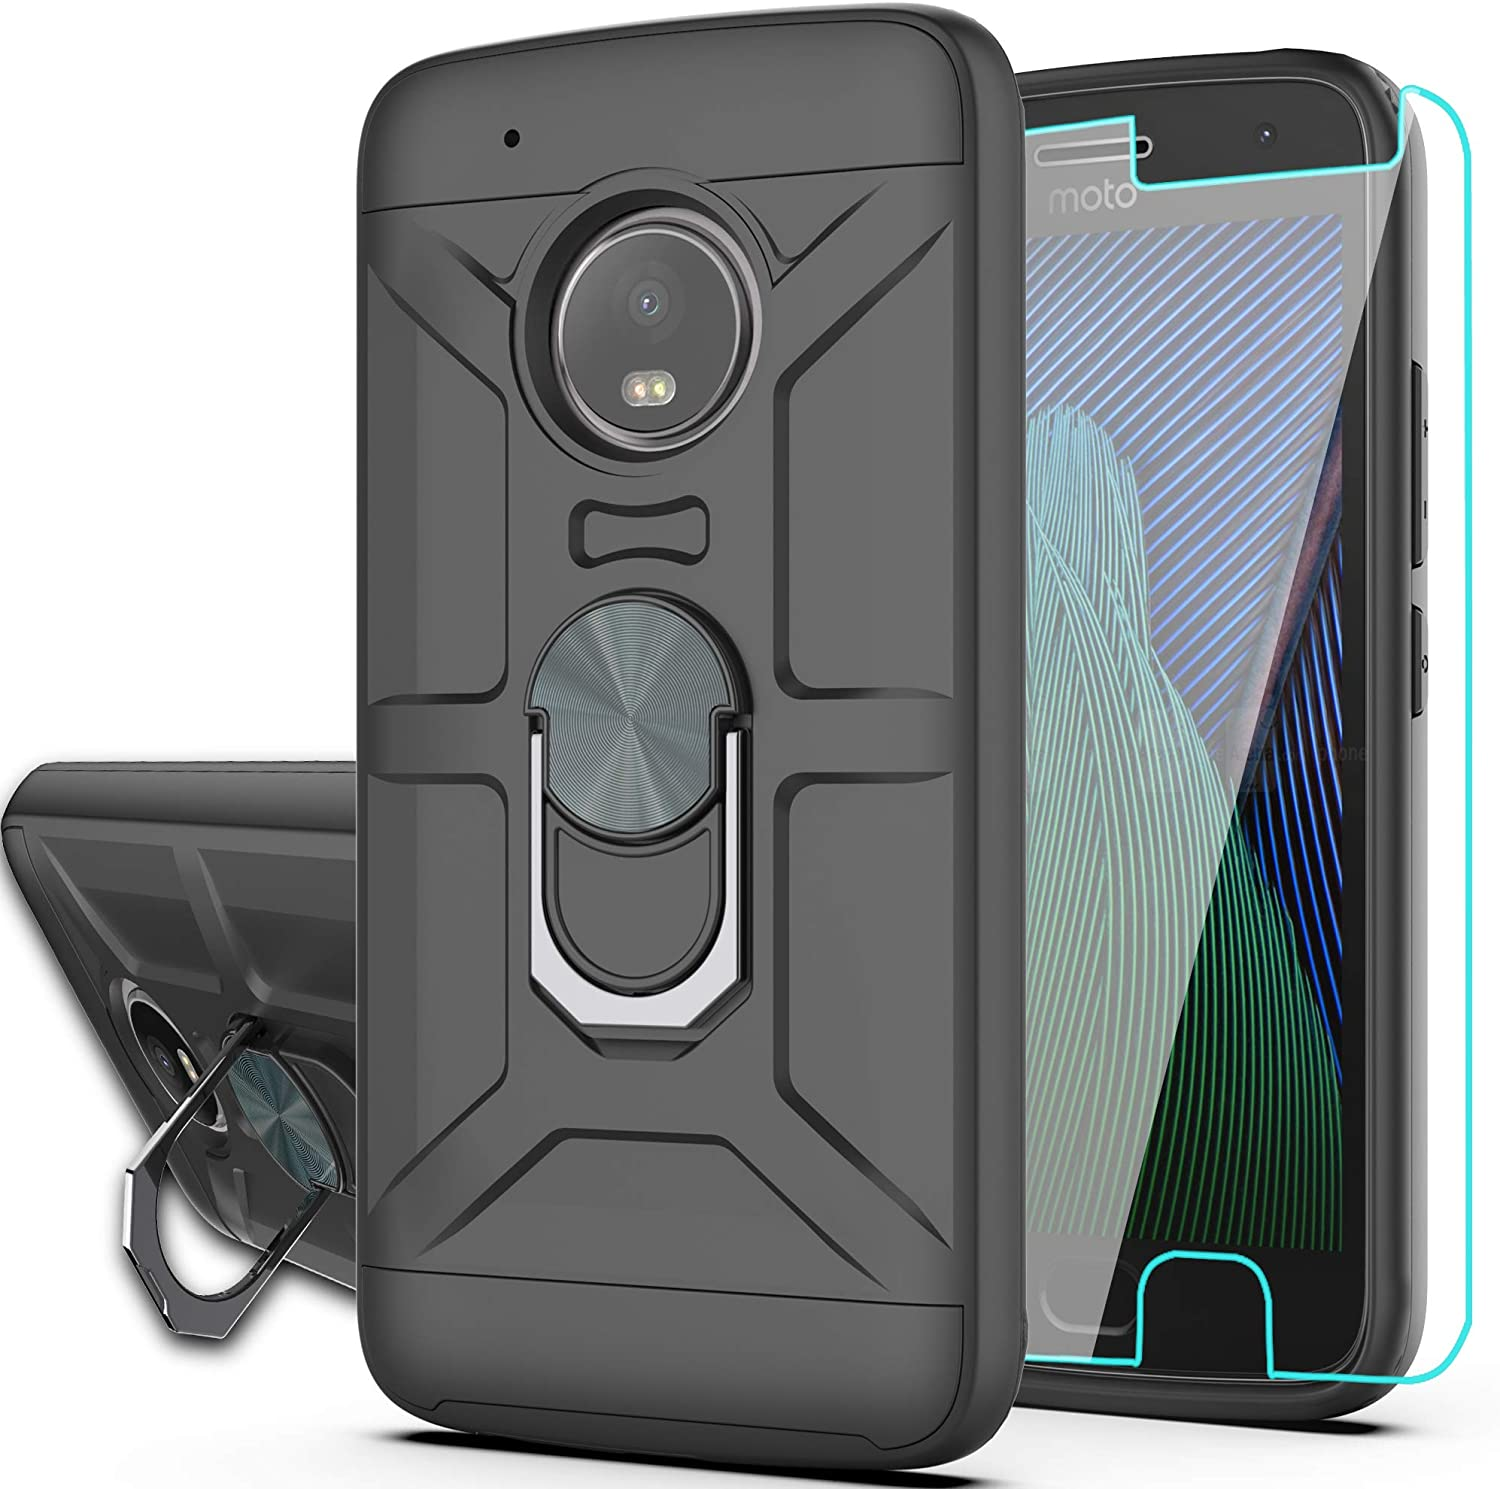 Moto G5 Plus Case,Moto G Plus 5th Case with HD Phone Screen Protector,YmhxcY 360 Degree Rotating Ring & Bracket Dual Layer Resistant Back Cover for Moto X 2017-ZH (ZS-Moto G5 Plus-Black)